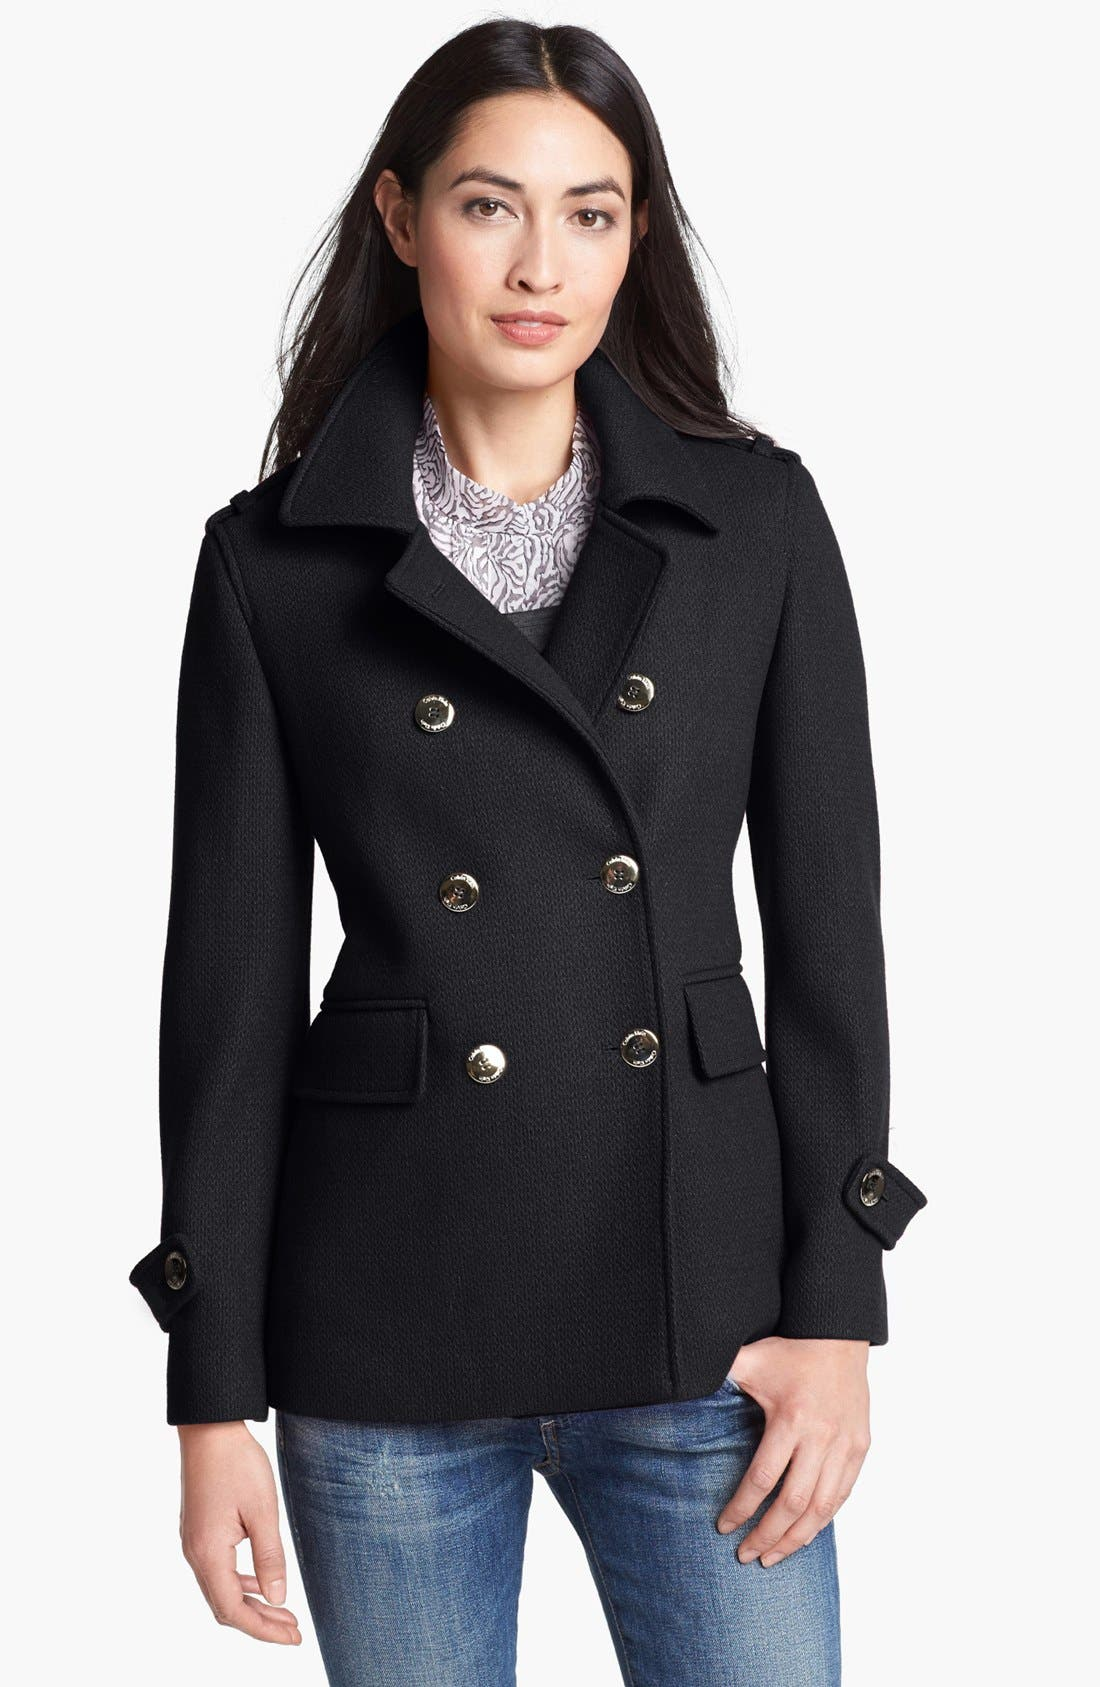 Alternate Image 1 Selected - Calvin Klein Textured Wool Blend Peacoat (Online Only)